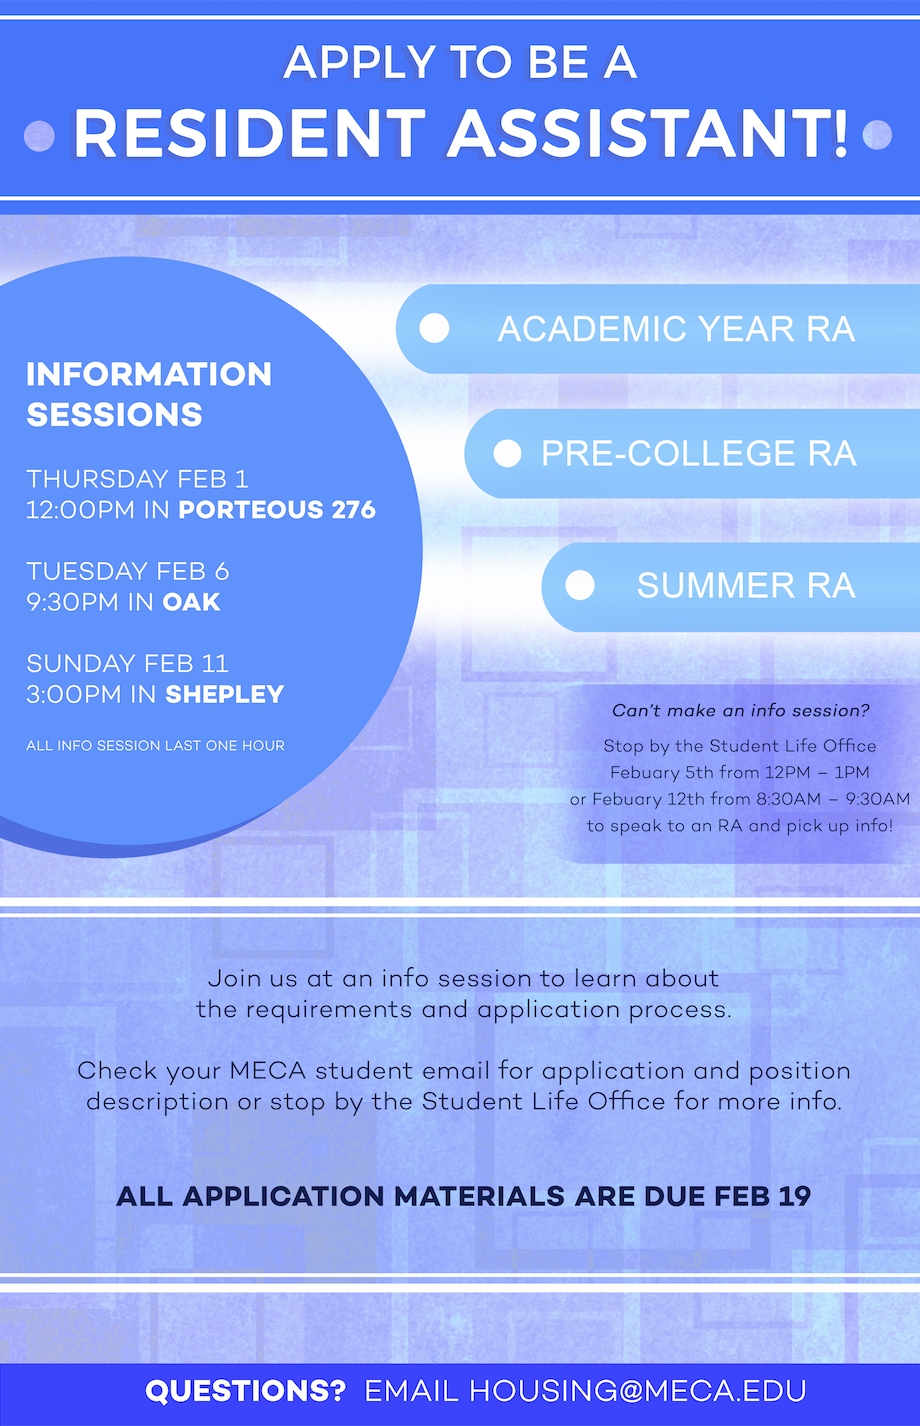 MECA RA Hiring Handouts + Flyers - 11 x 17 poster + double-sided half-letter handout.